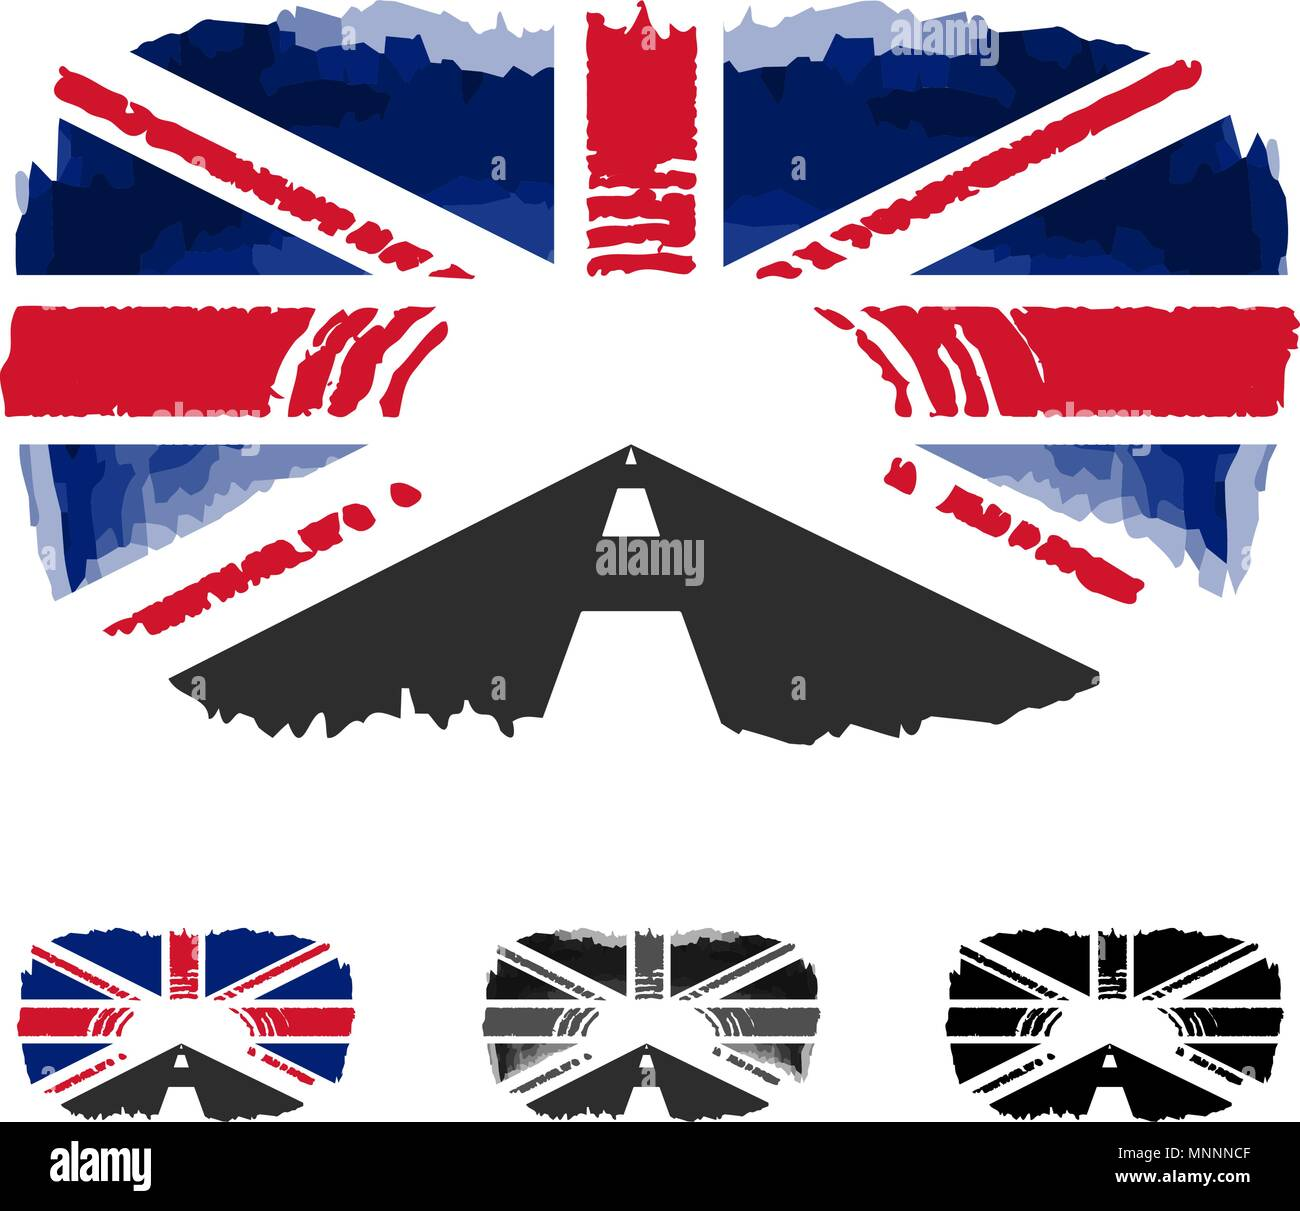 Top Wallpaper Name English - highway-leading-to-flag-of-great-britain-poster-wallpaper-english-flag-and-road-company-name-set-MNNNCF  Best Photo Reference_428798.jpg